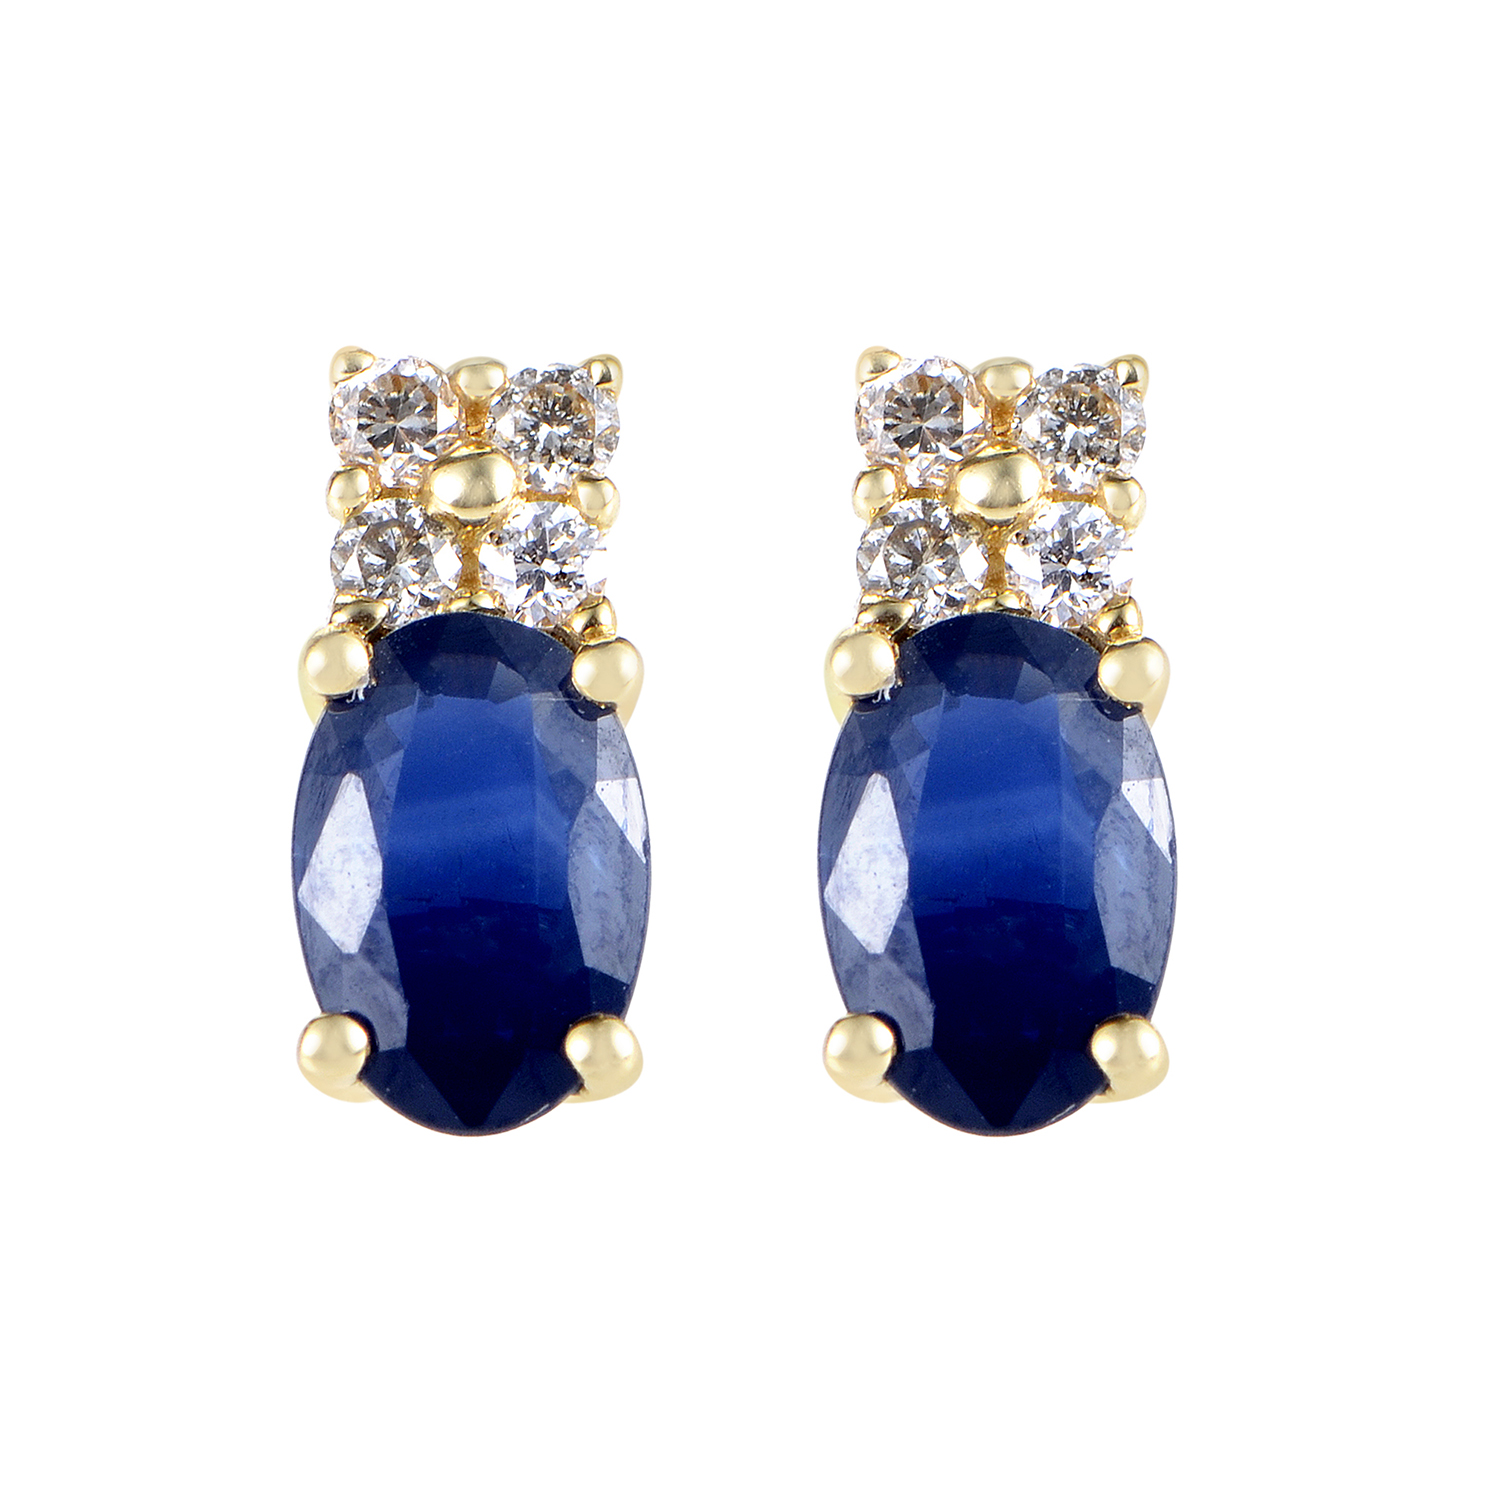 14K Yellow Gold Diamond & Sapphire Stud Earrings ER4-14843YSA